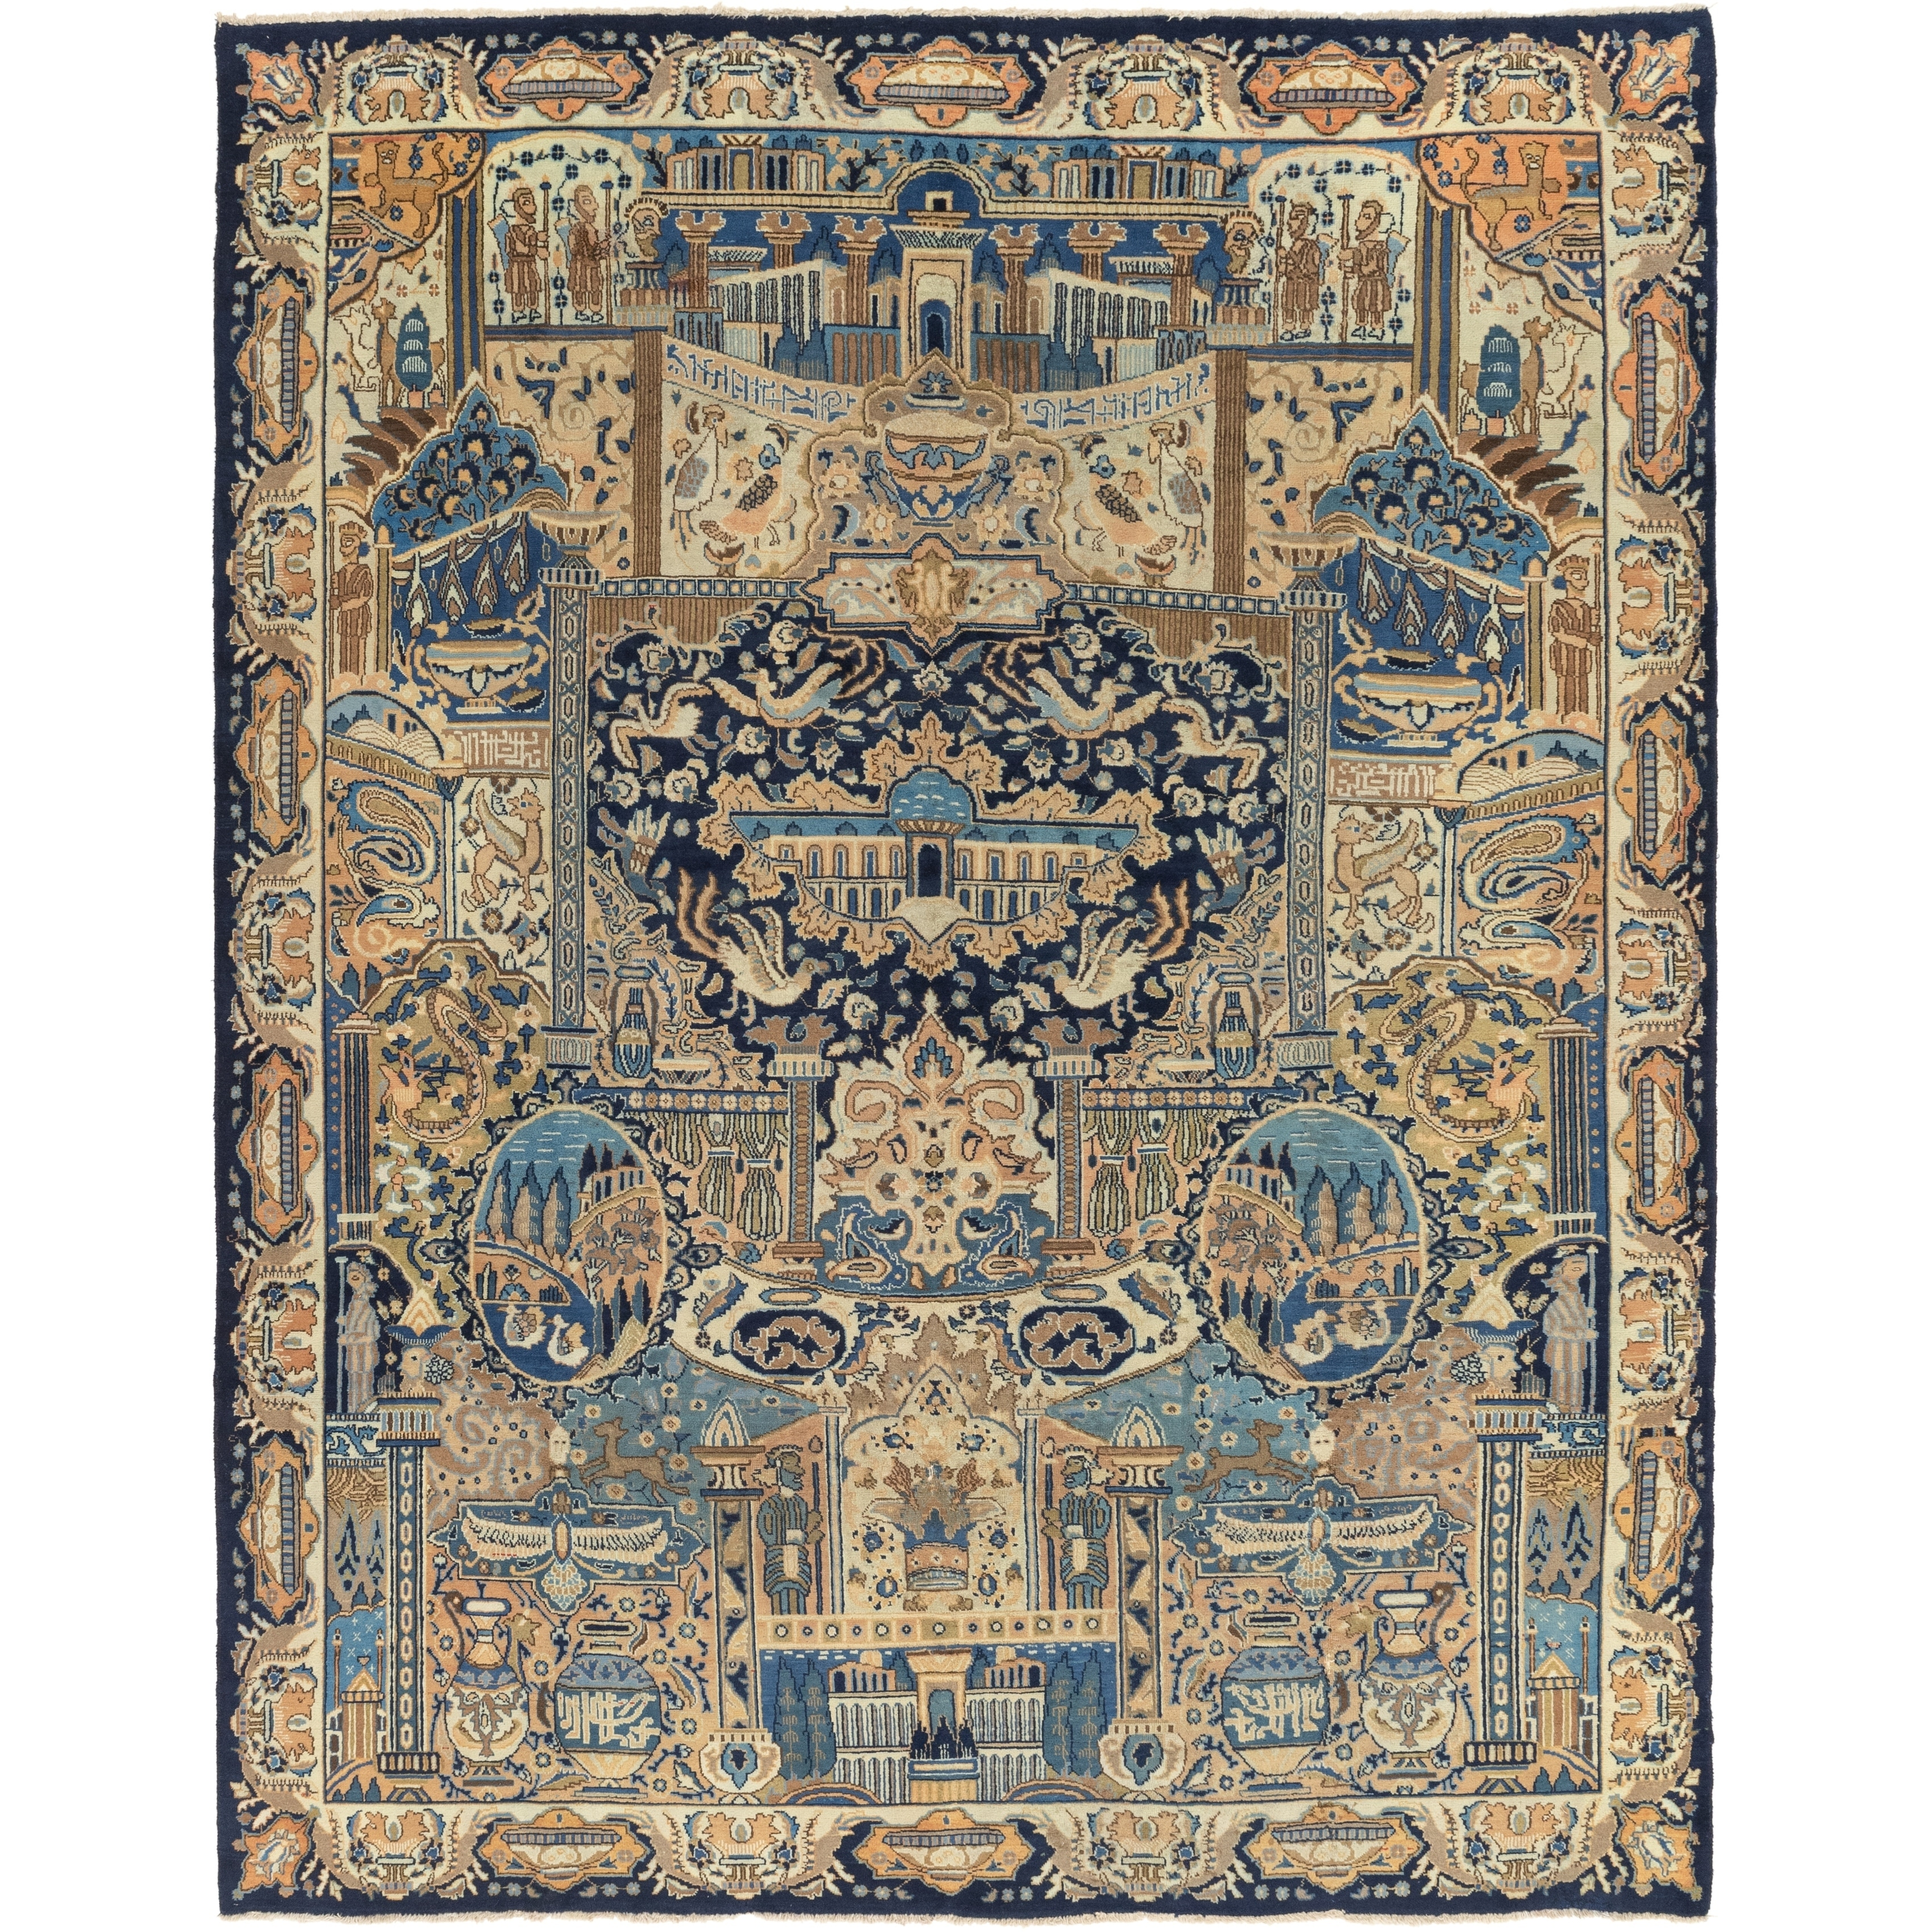 Hand Knotted Kashmar Semi Antique Wool Area Rug - 9 7 x 12 5 (Blue - 9 7 x 12 5)